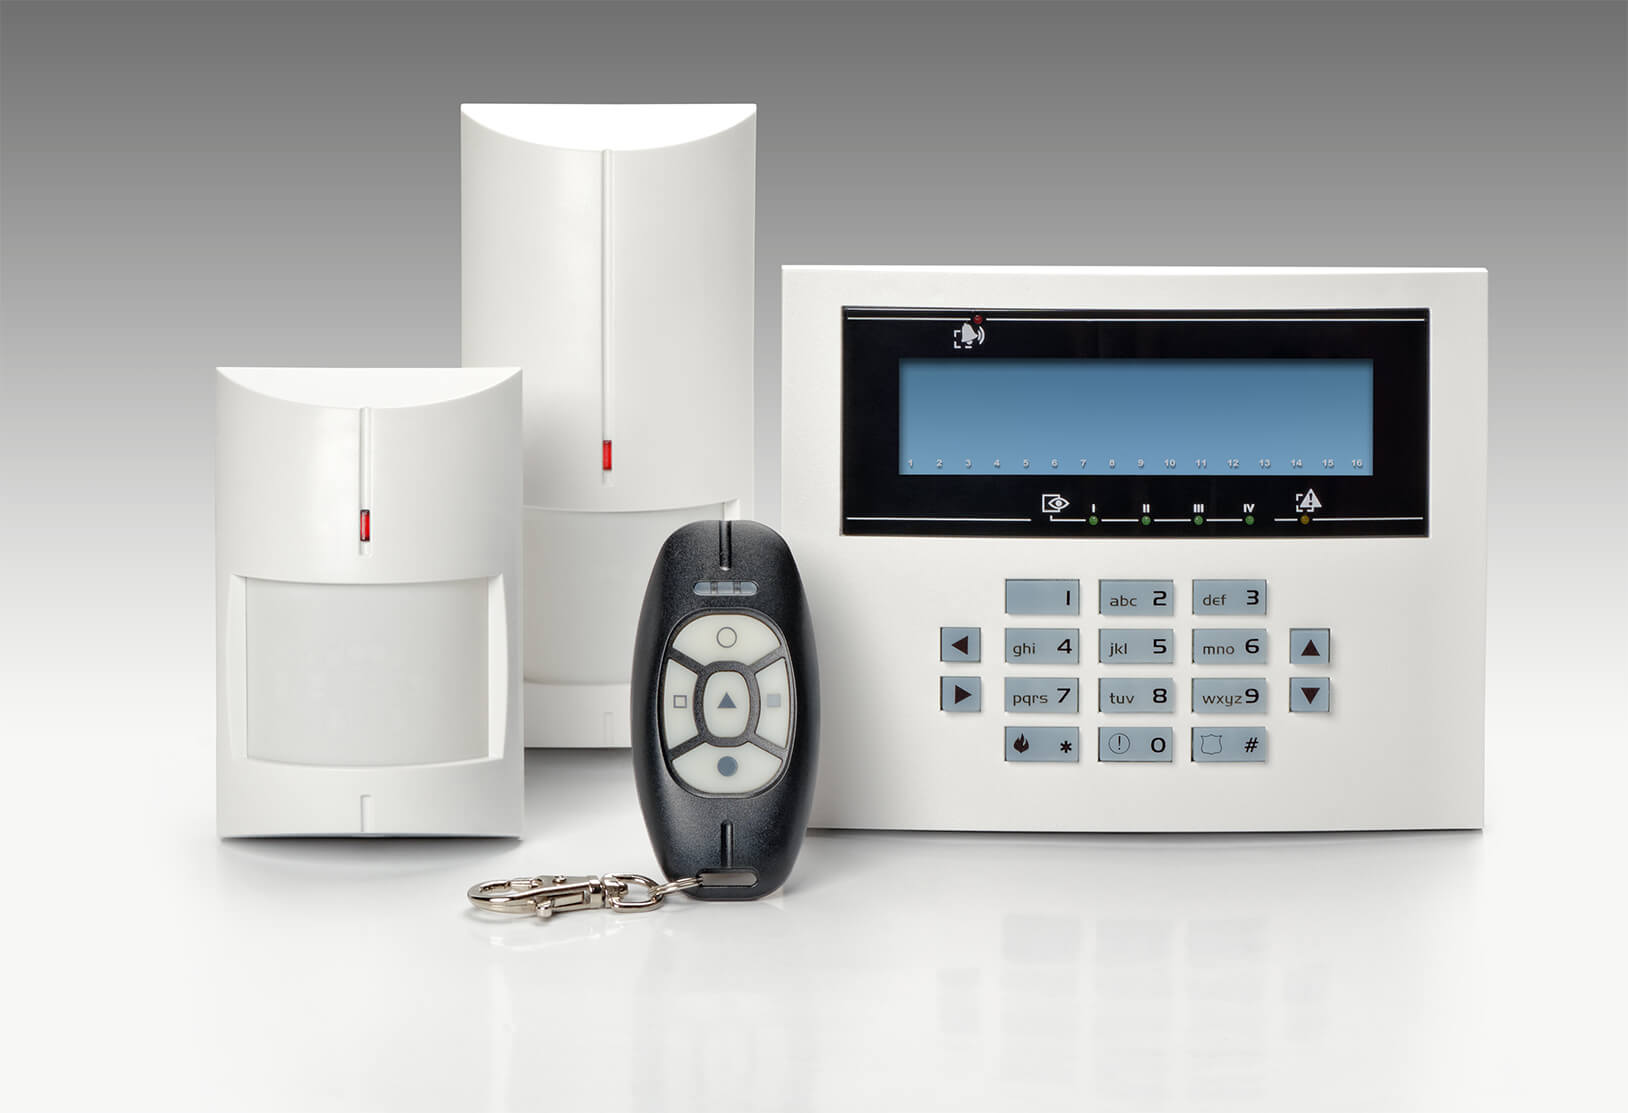 Business & Residential NSI / NACOSS Approved Burglar Alarms In Honor Oak Park SE4 - Local Honor Oak Park SE4 security company.Call 02078872244 - Dedicated to Safety & Security. Companies, shops and homes ..